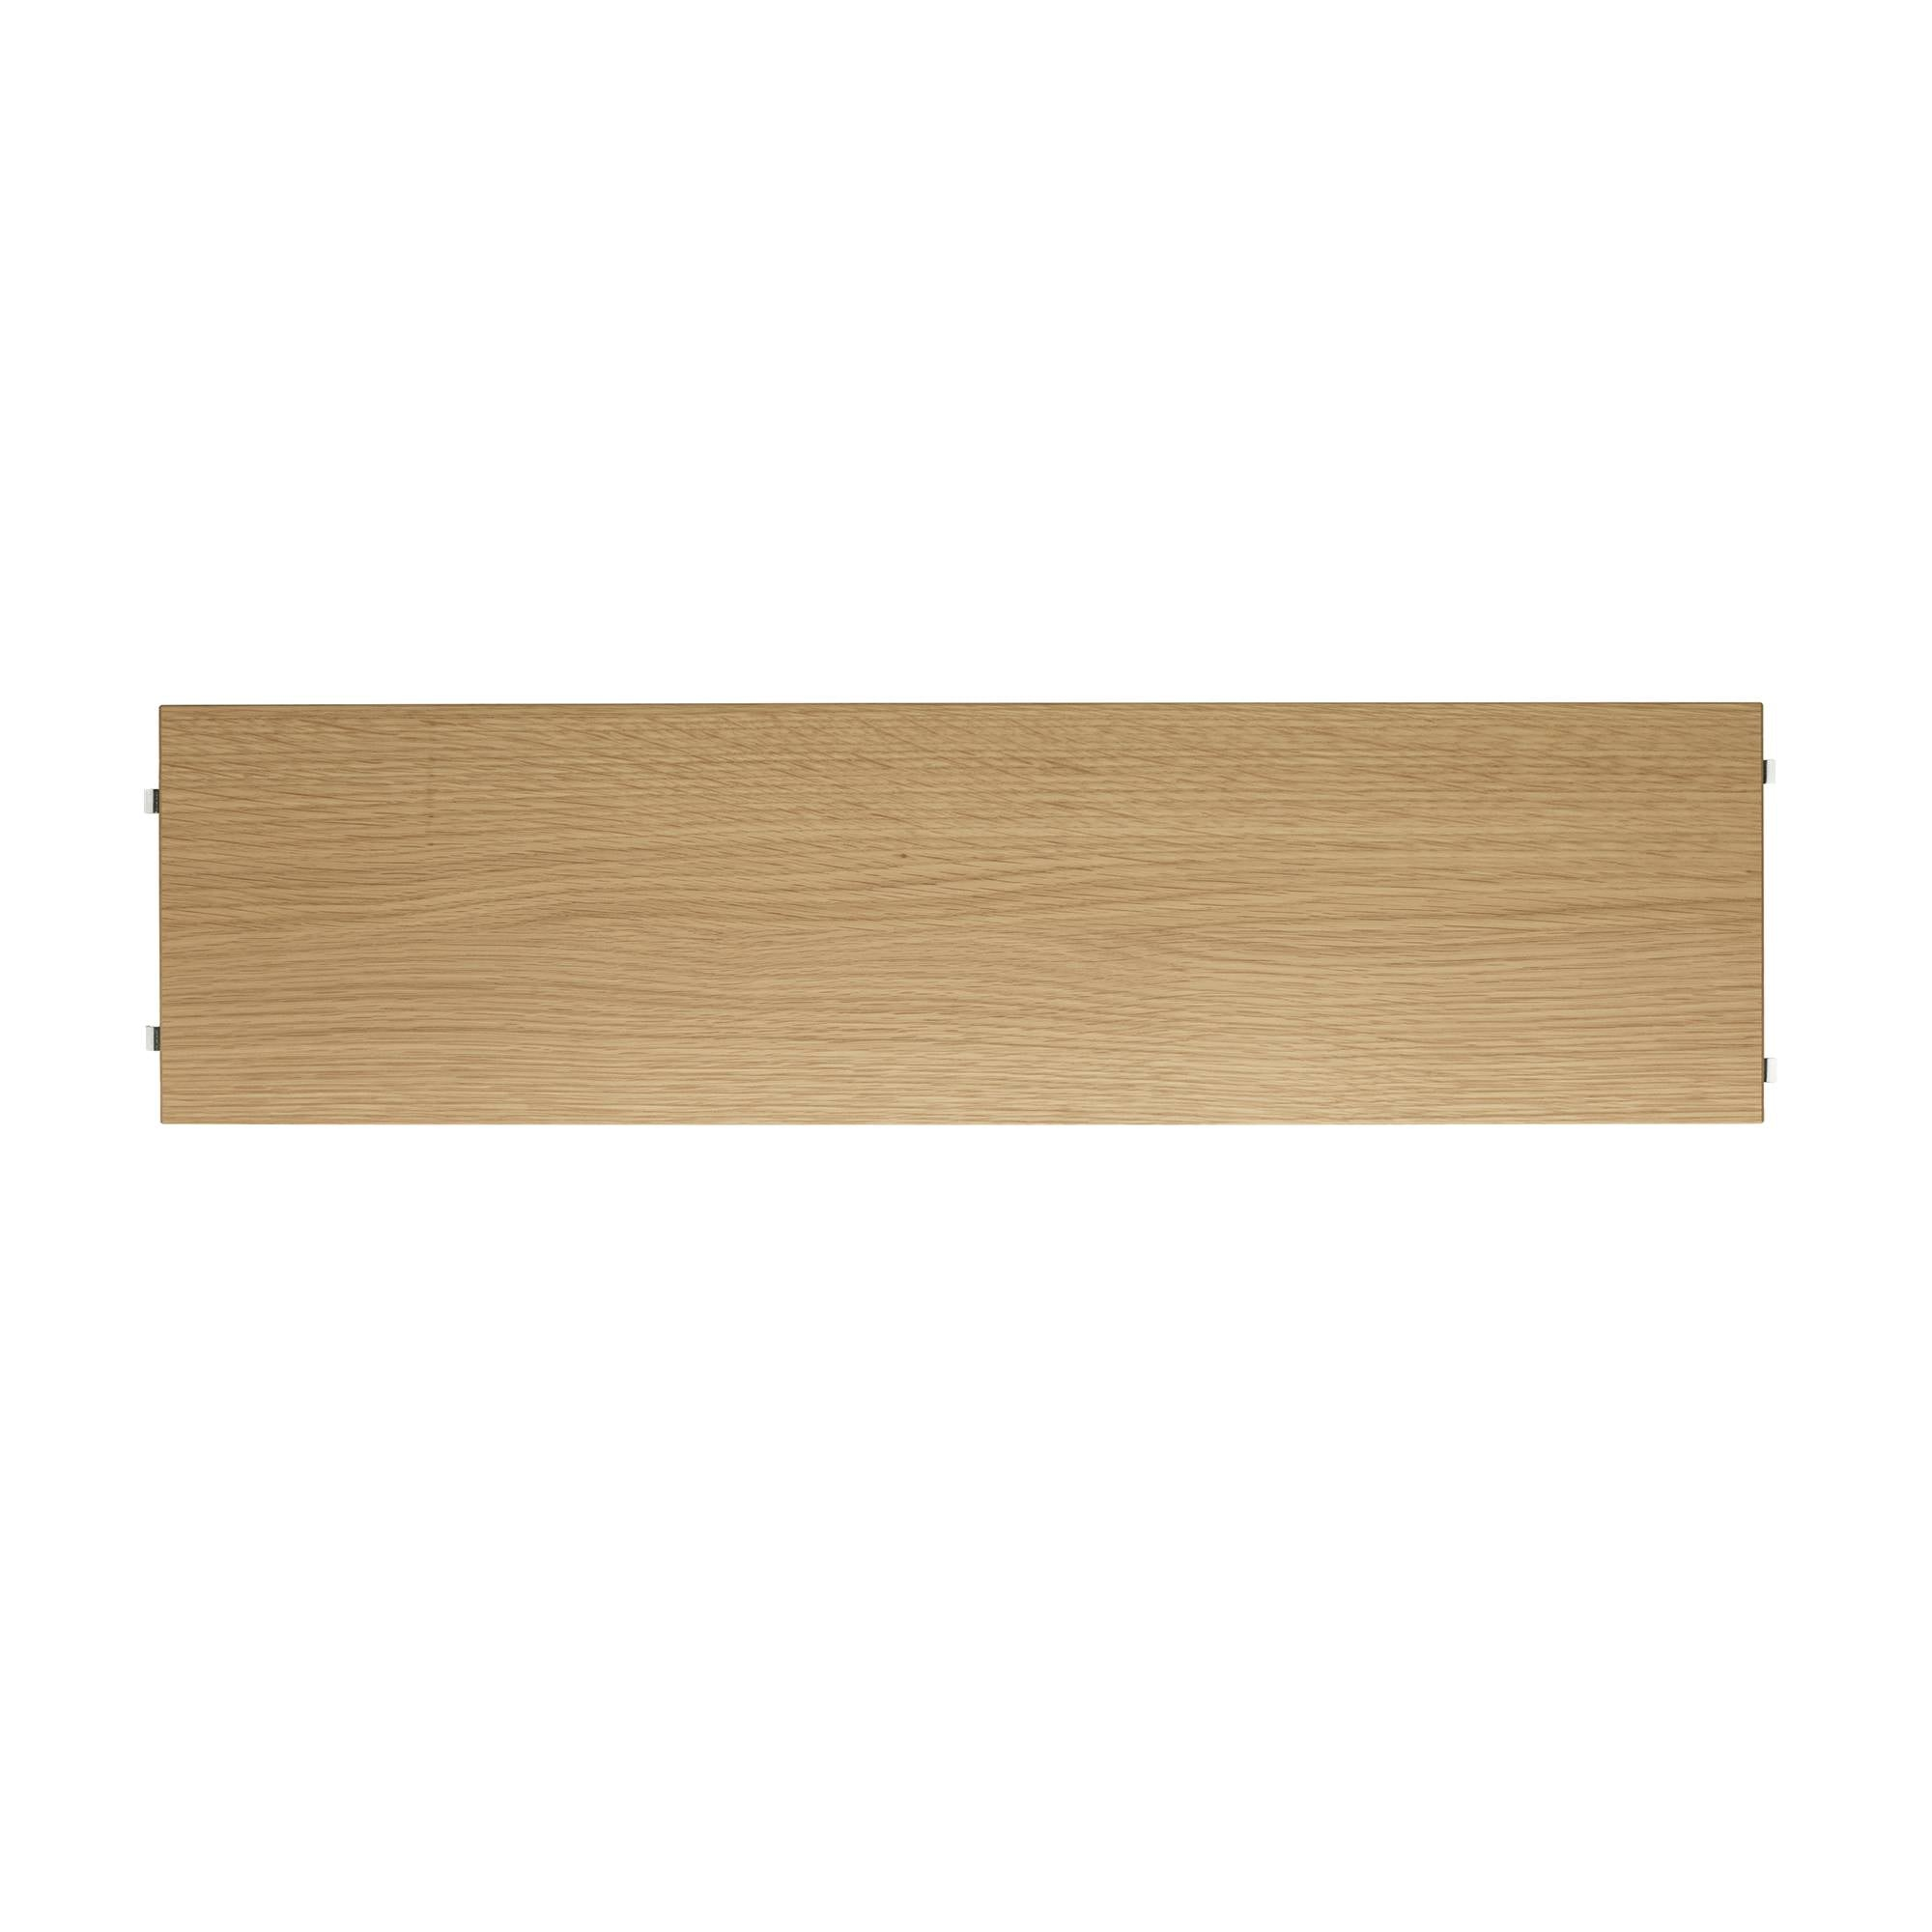 String System: Shelves (3-Pack) + 78 x 20 cm + Oak